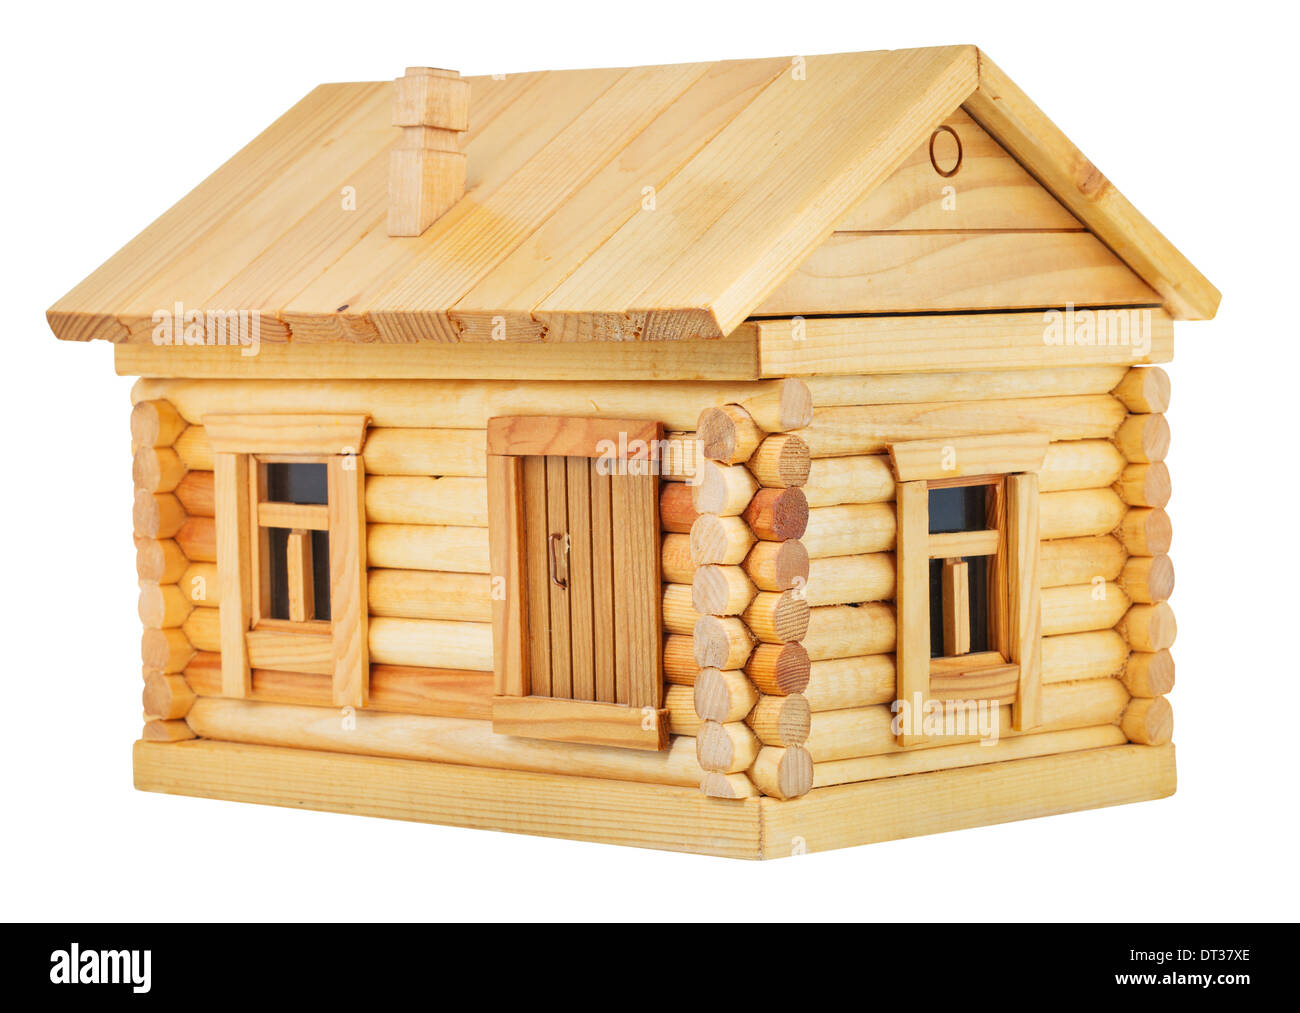 model of simple village wooden log house isolated on white background - Stock Image